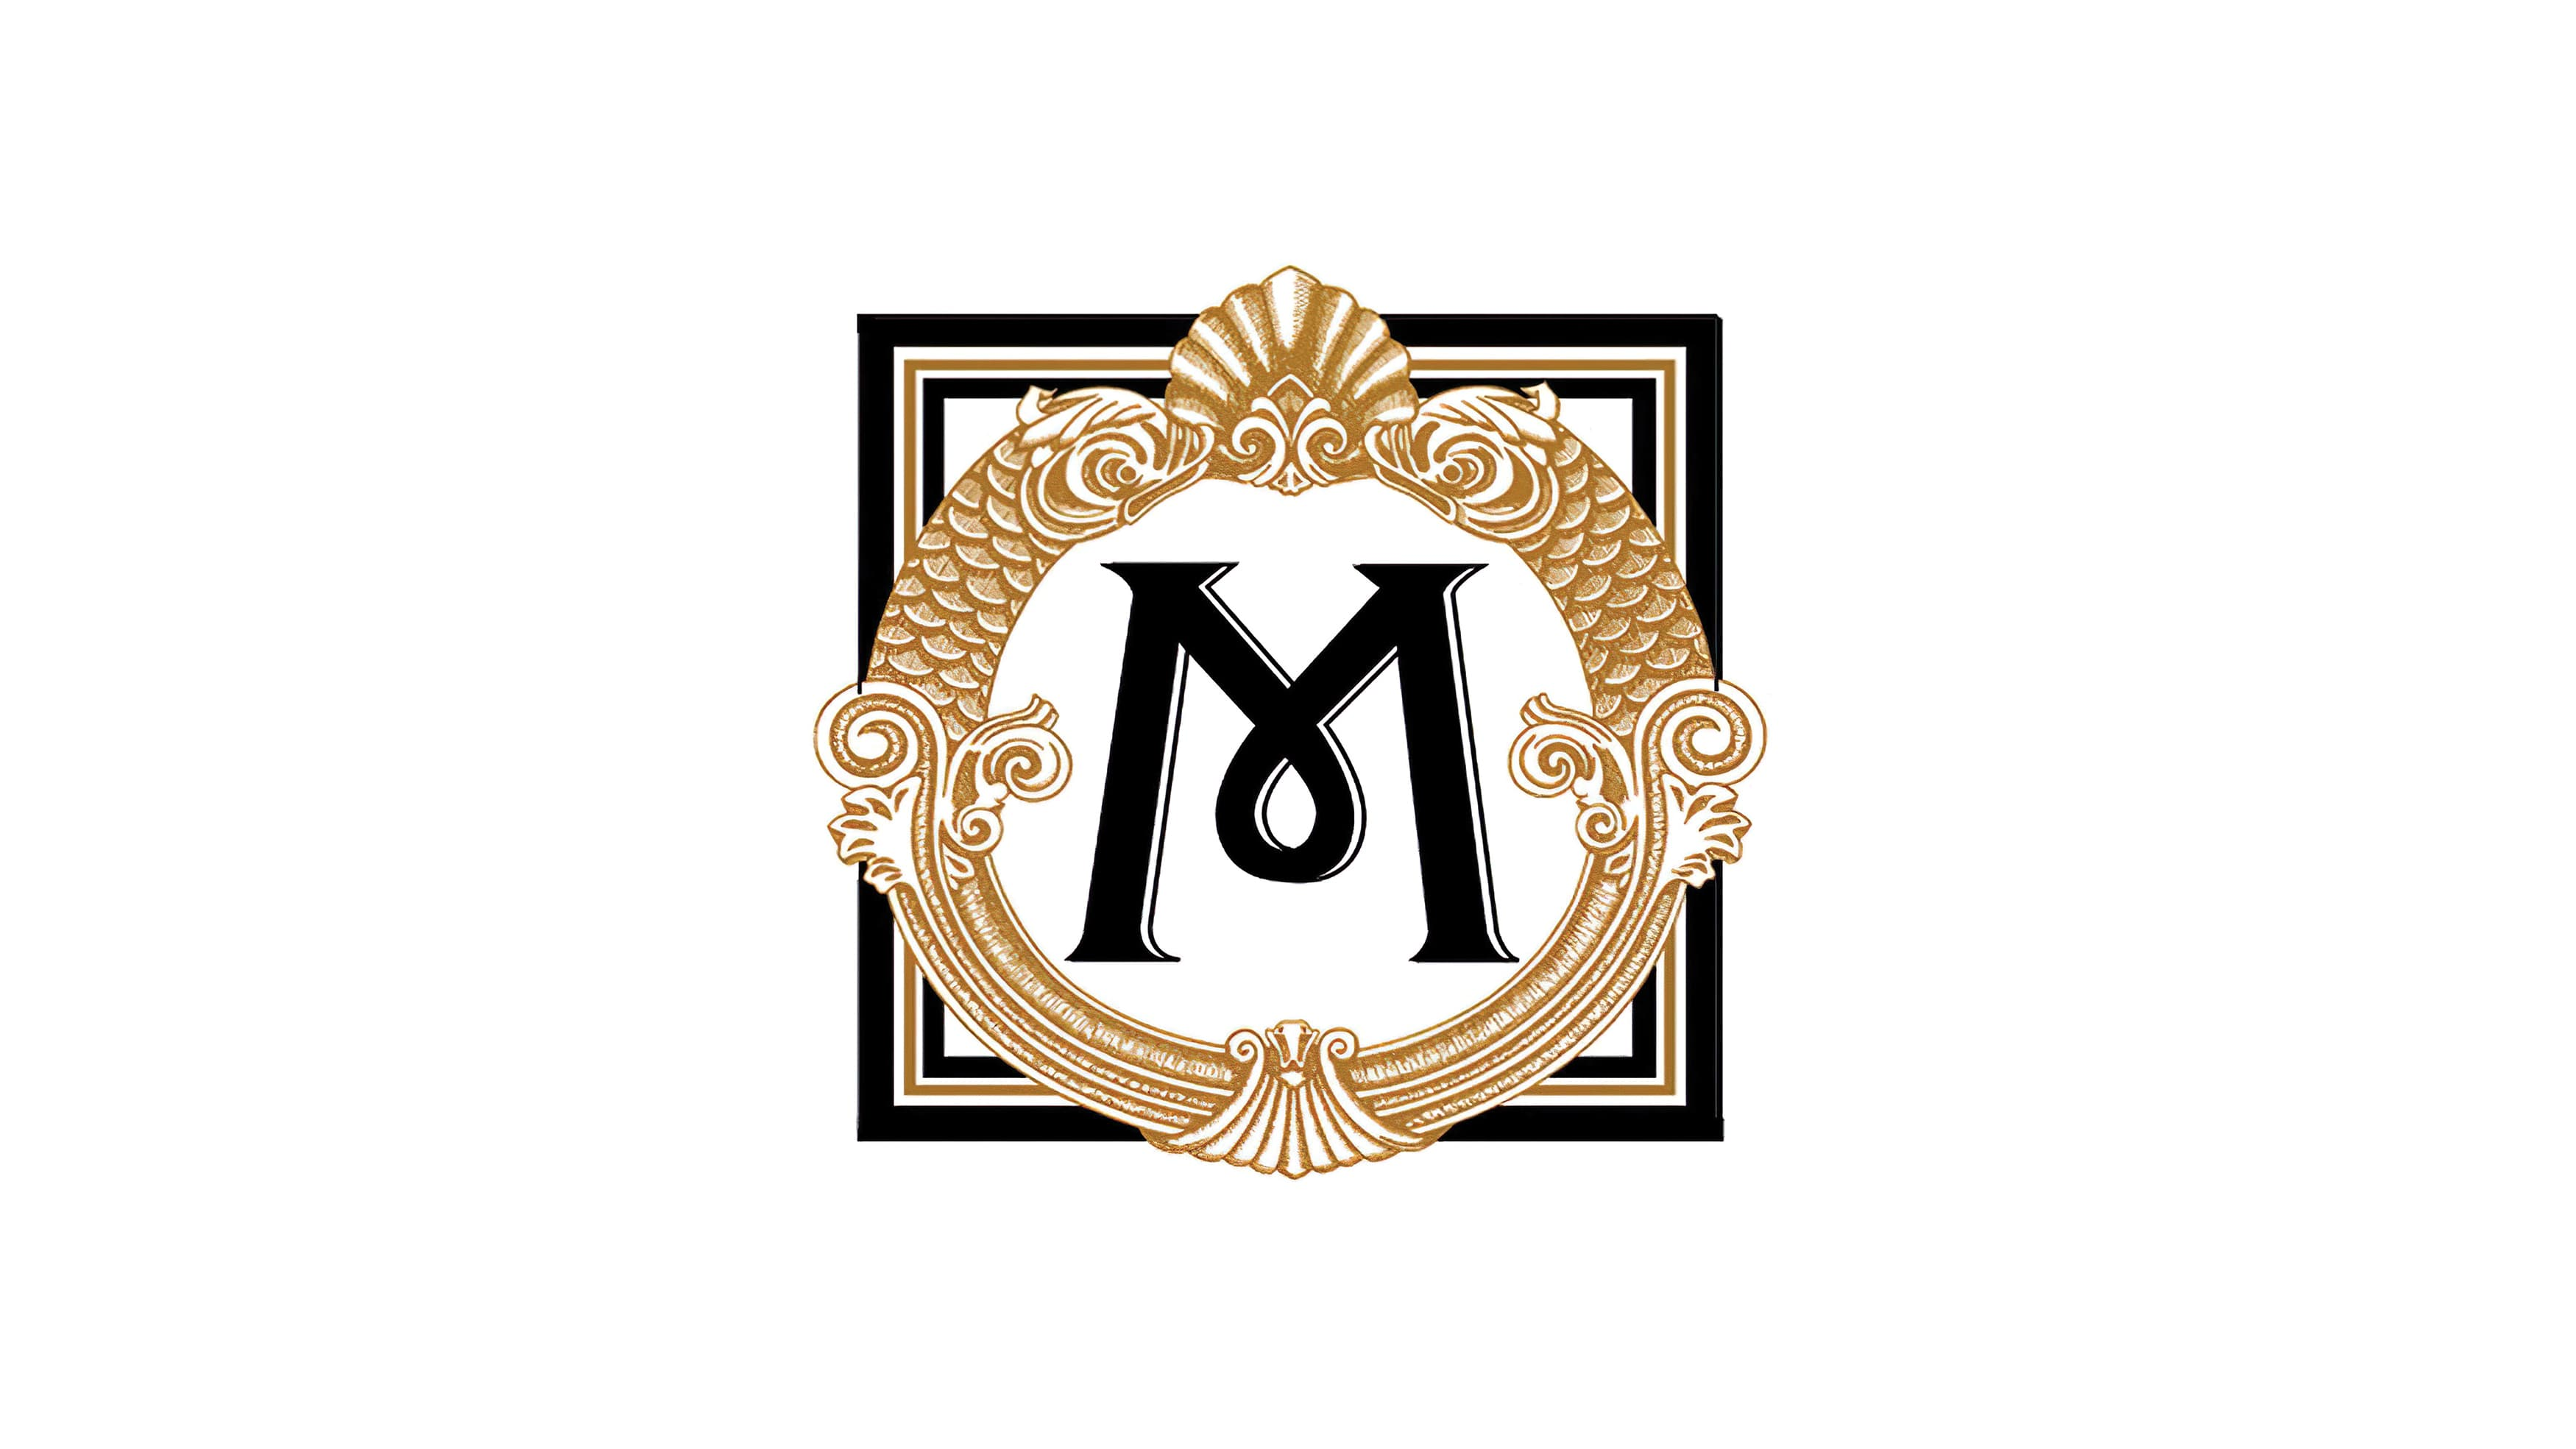 The intricate brand mark designed for the Hotel Miracosta.